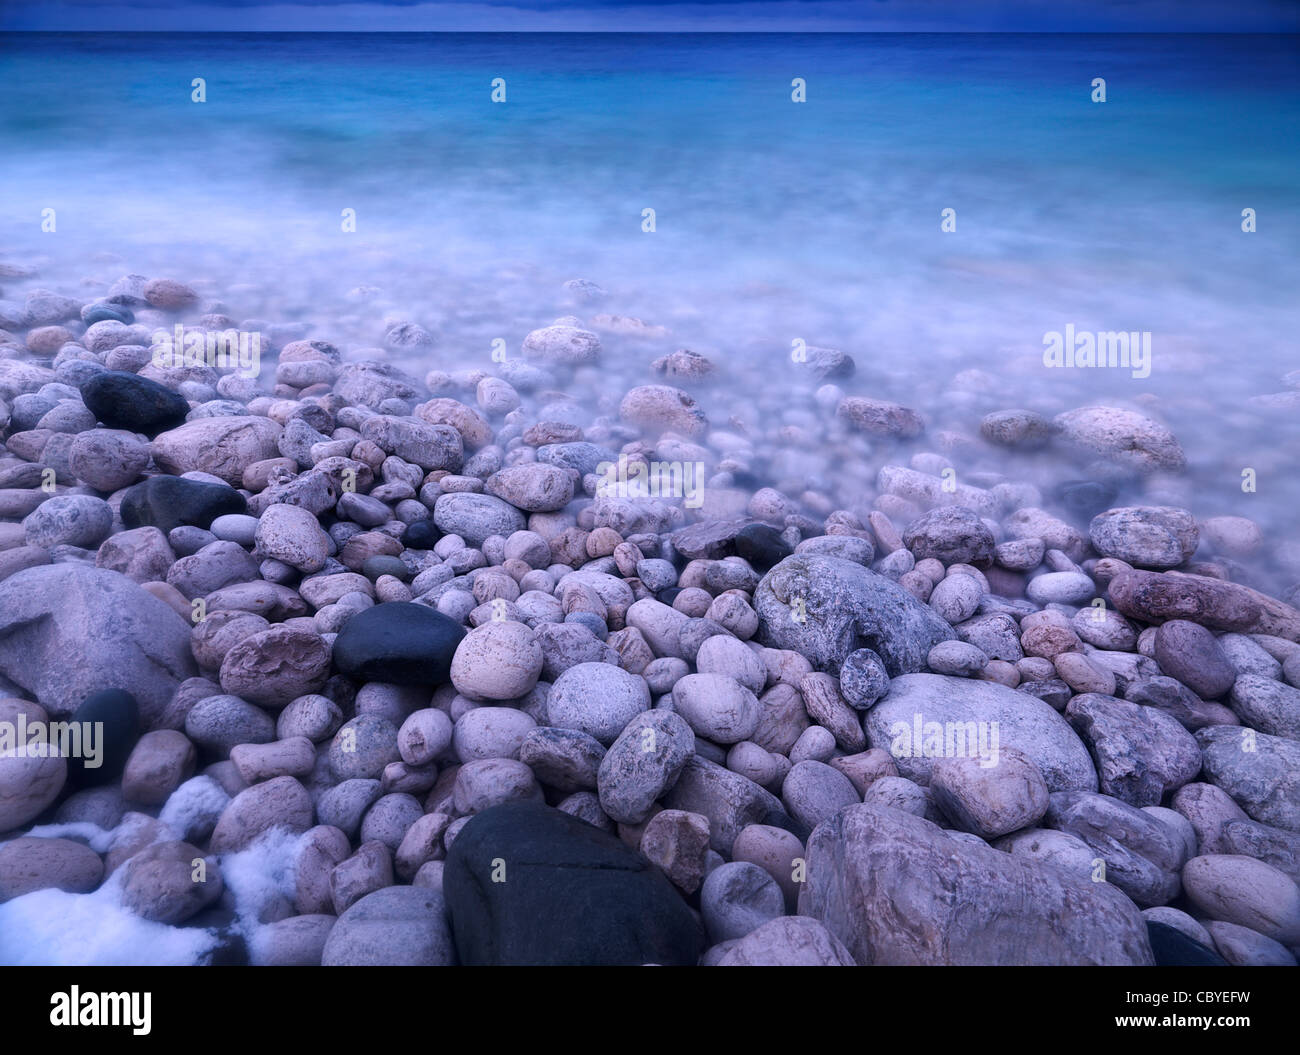 Pebbles on a shore of Georgian Bay. Wintertime scenic landscape. Bruce Peninsula National Park, Ontario, Canada. - Stock Image